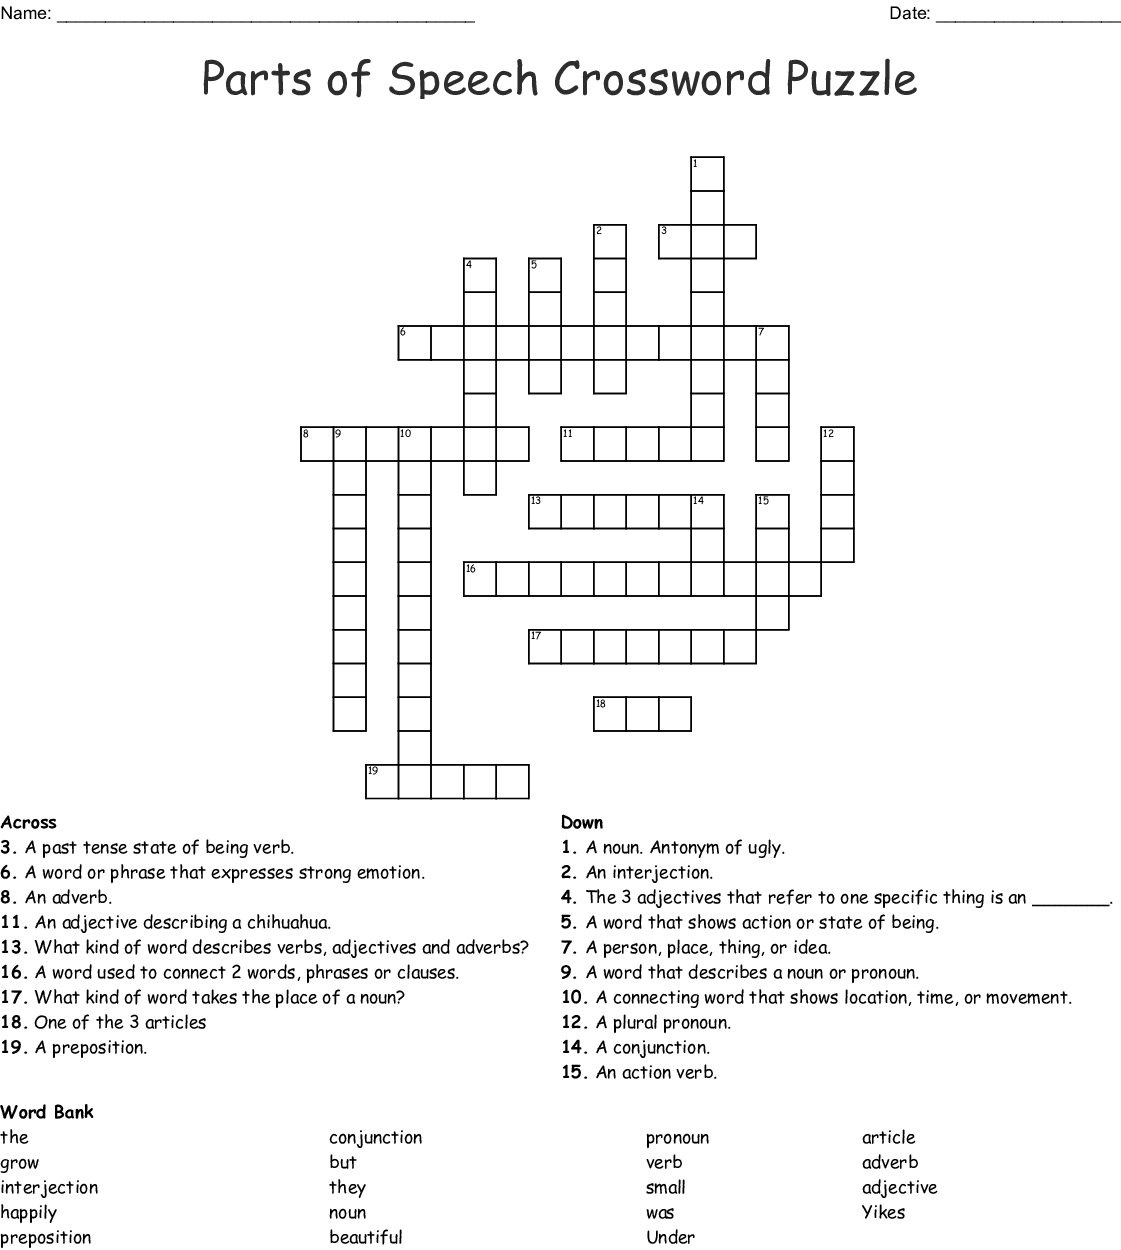 Grammar Crossword Puzzle